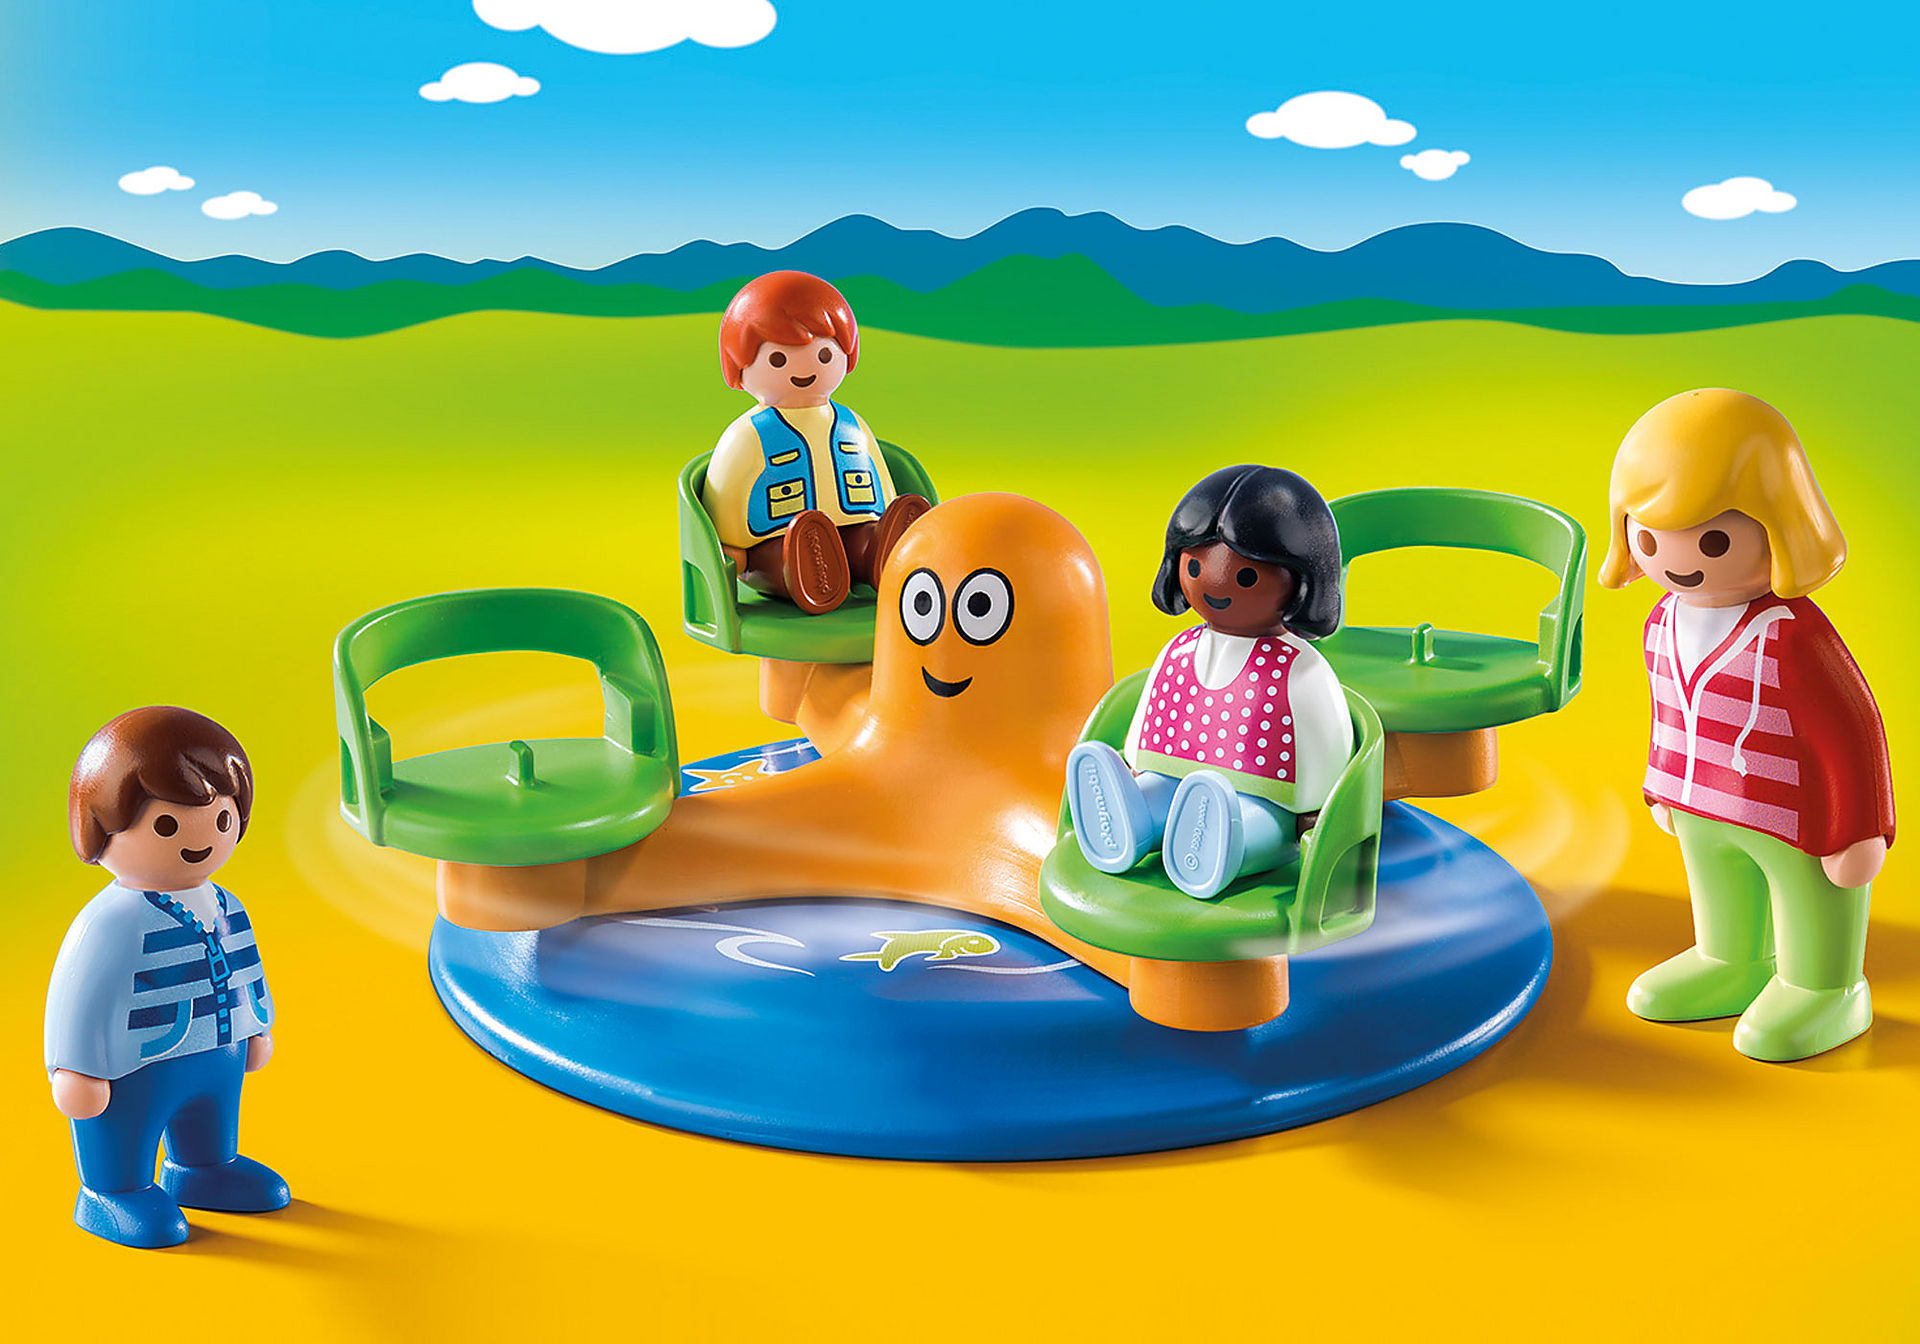 http://media.playmobil.com/i/playmobil/9379_product_detail/1.2.3 Carrusel Infantil